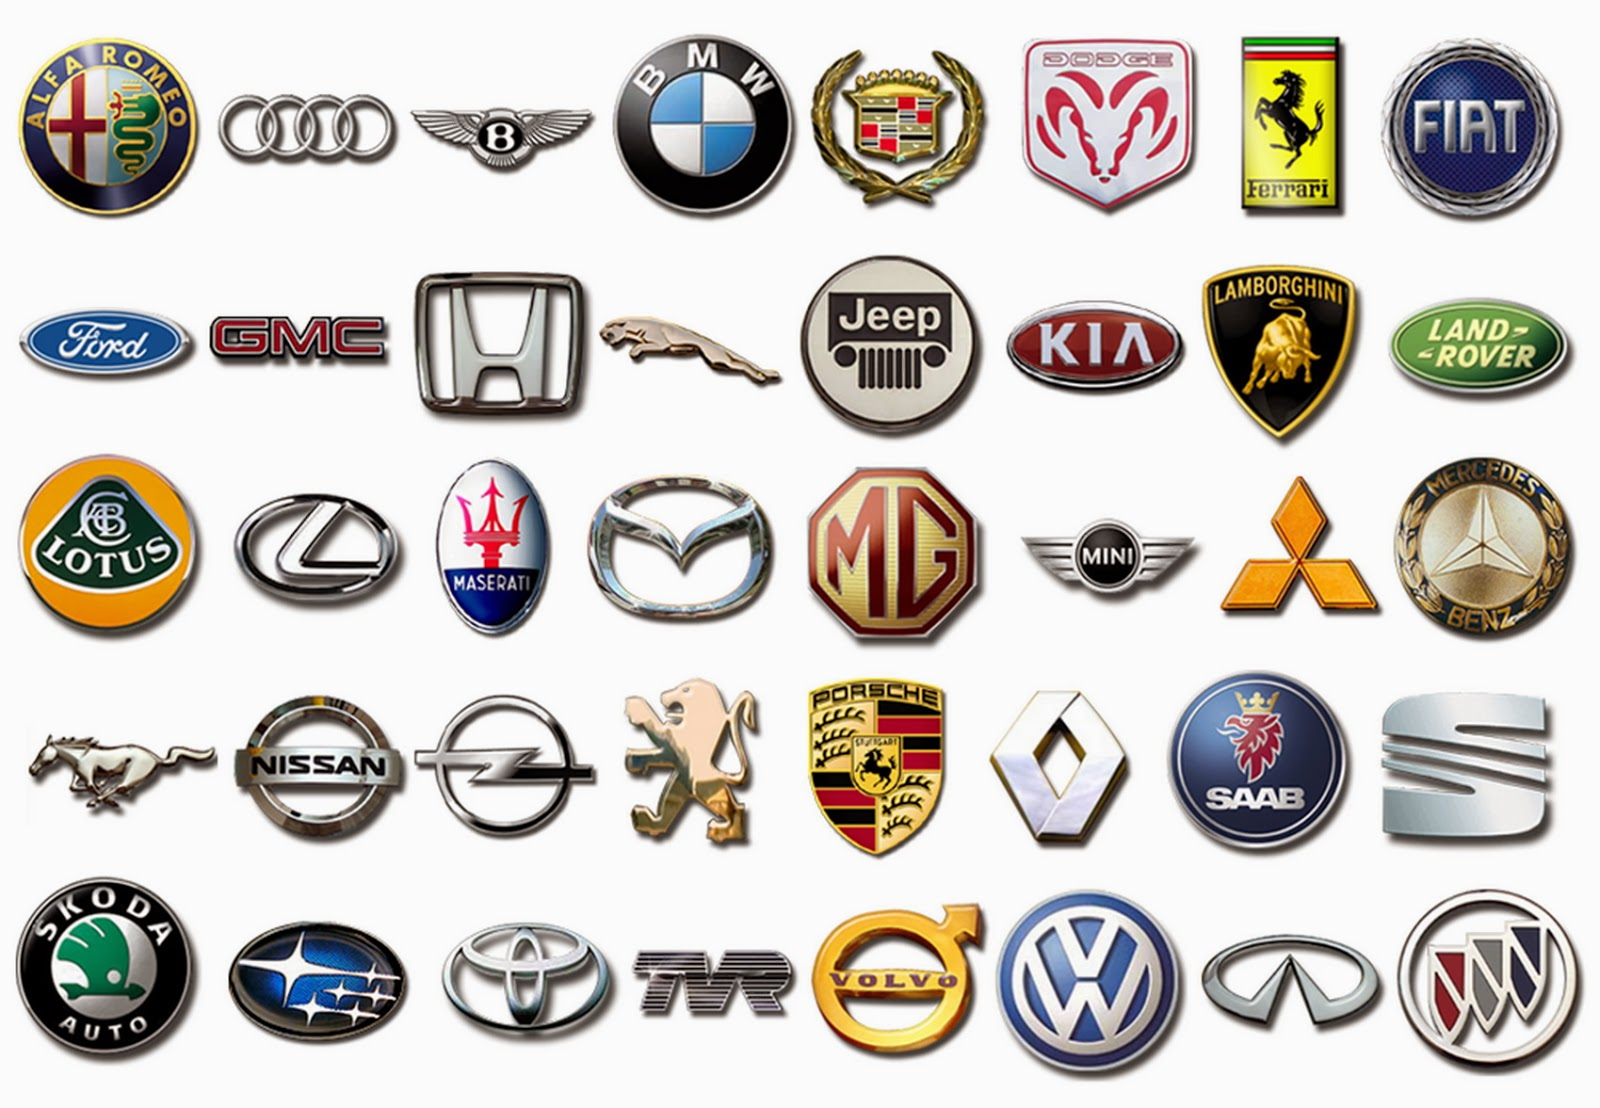 High end car symbols choice image symbol and sign ideas luxury car brand logos with names ratejna luxury car brand logos with names buycottarizona biocorpaavc